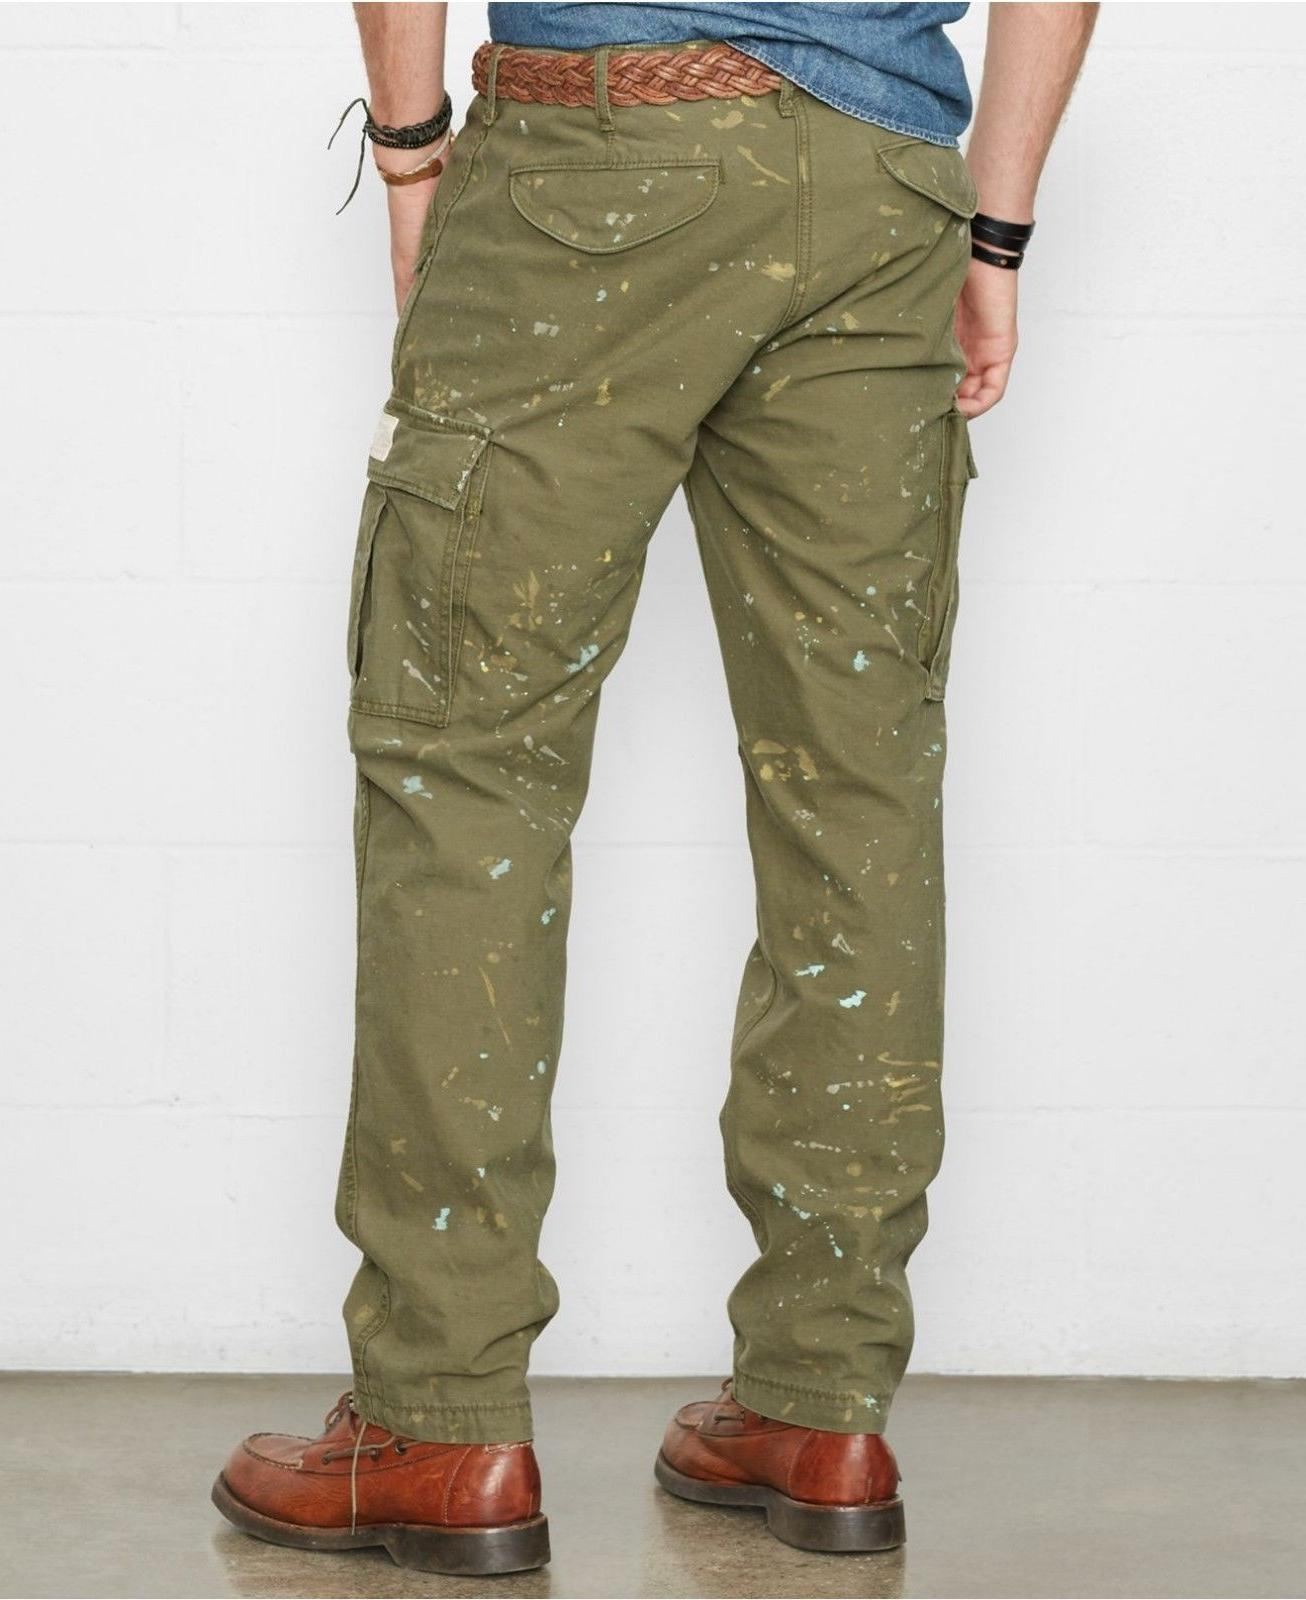 Polo & Supply Slim Fit Green Cargo Pants